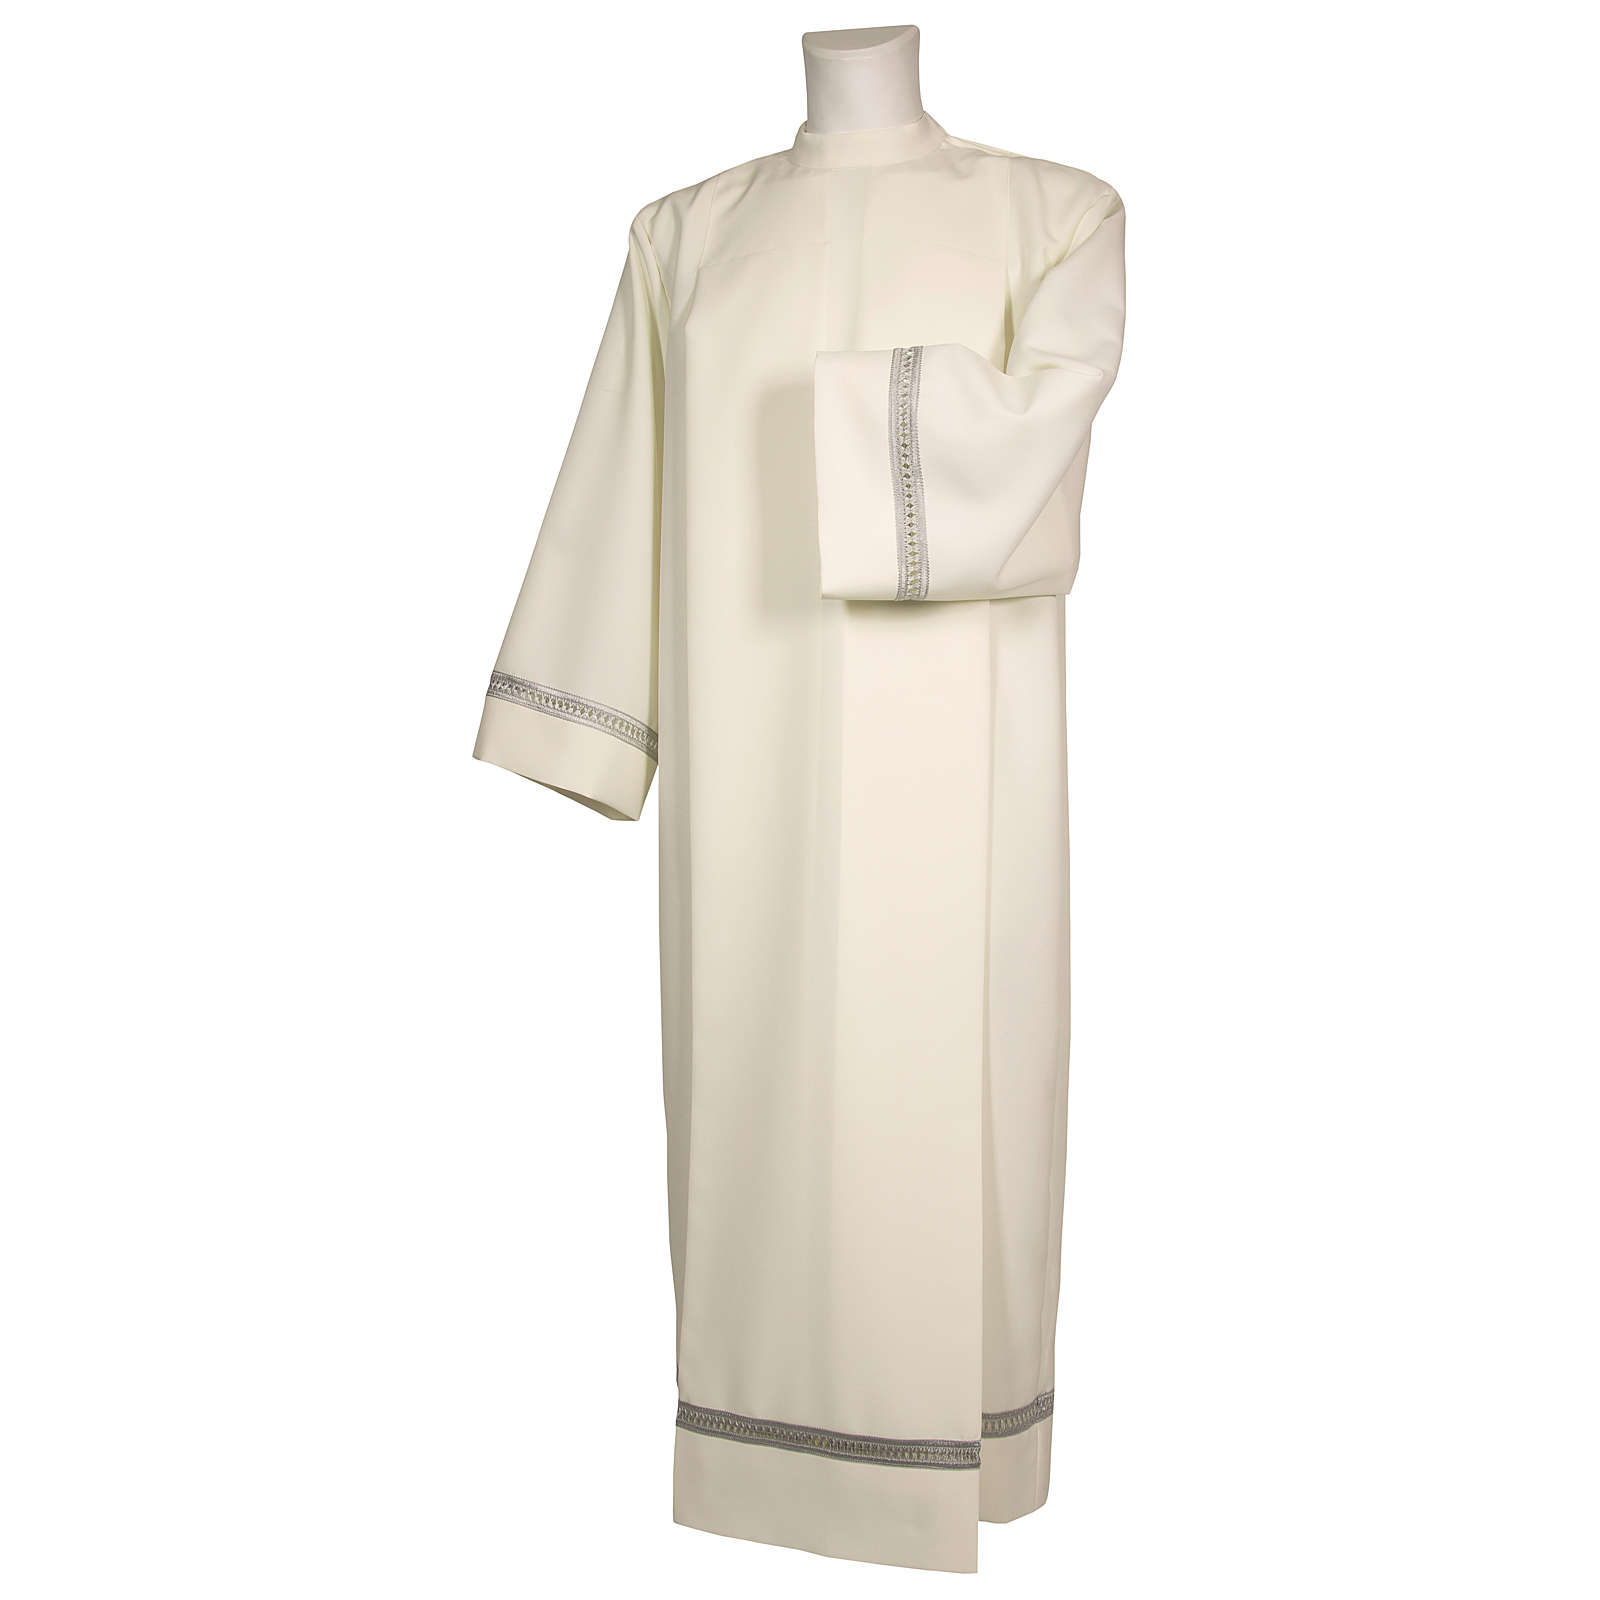 Alb 65% polyester 35% cotton with silver gigliuccio hemstitch and shoulder zipper, ivory 4